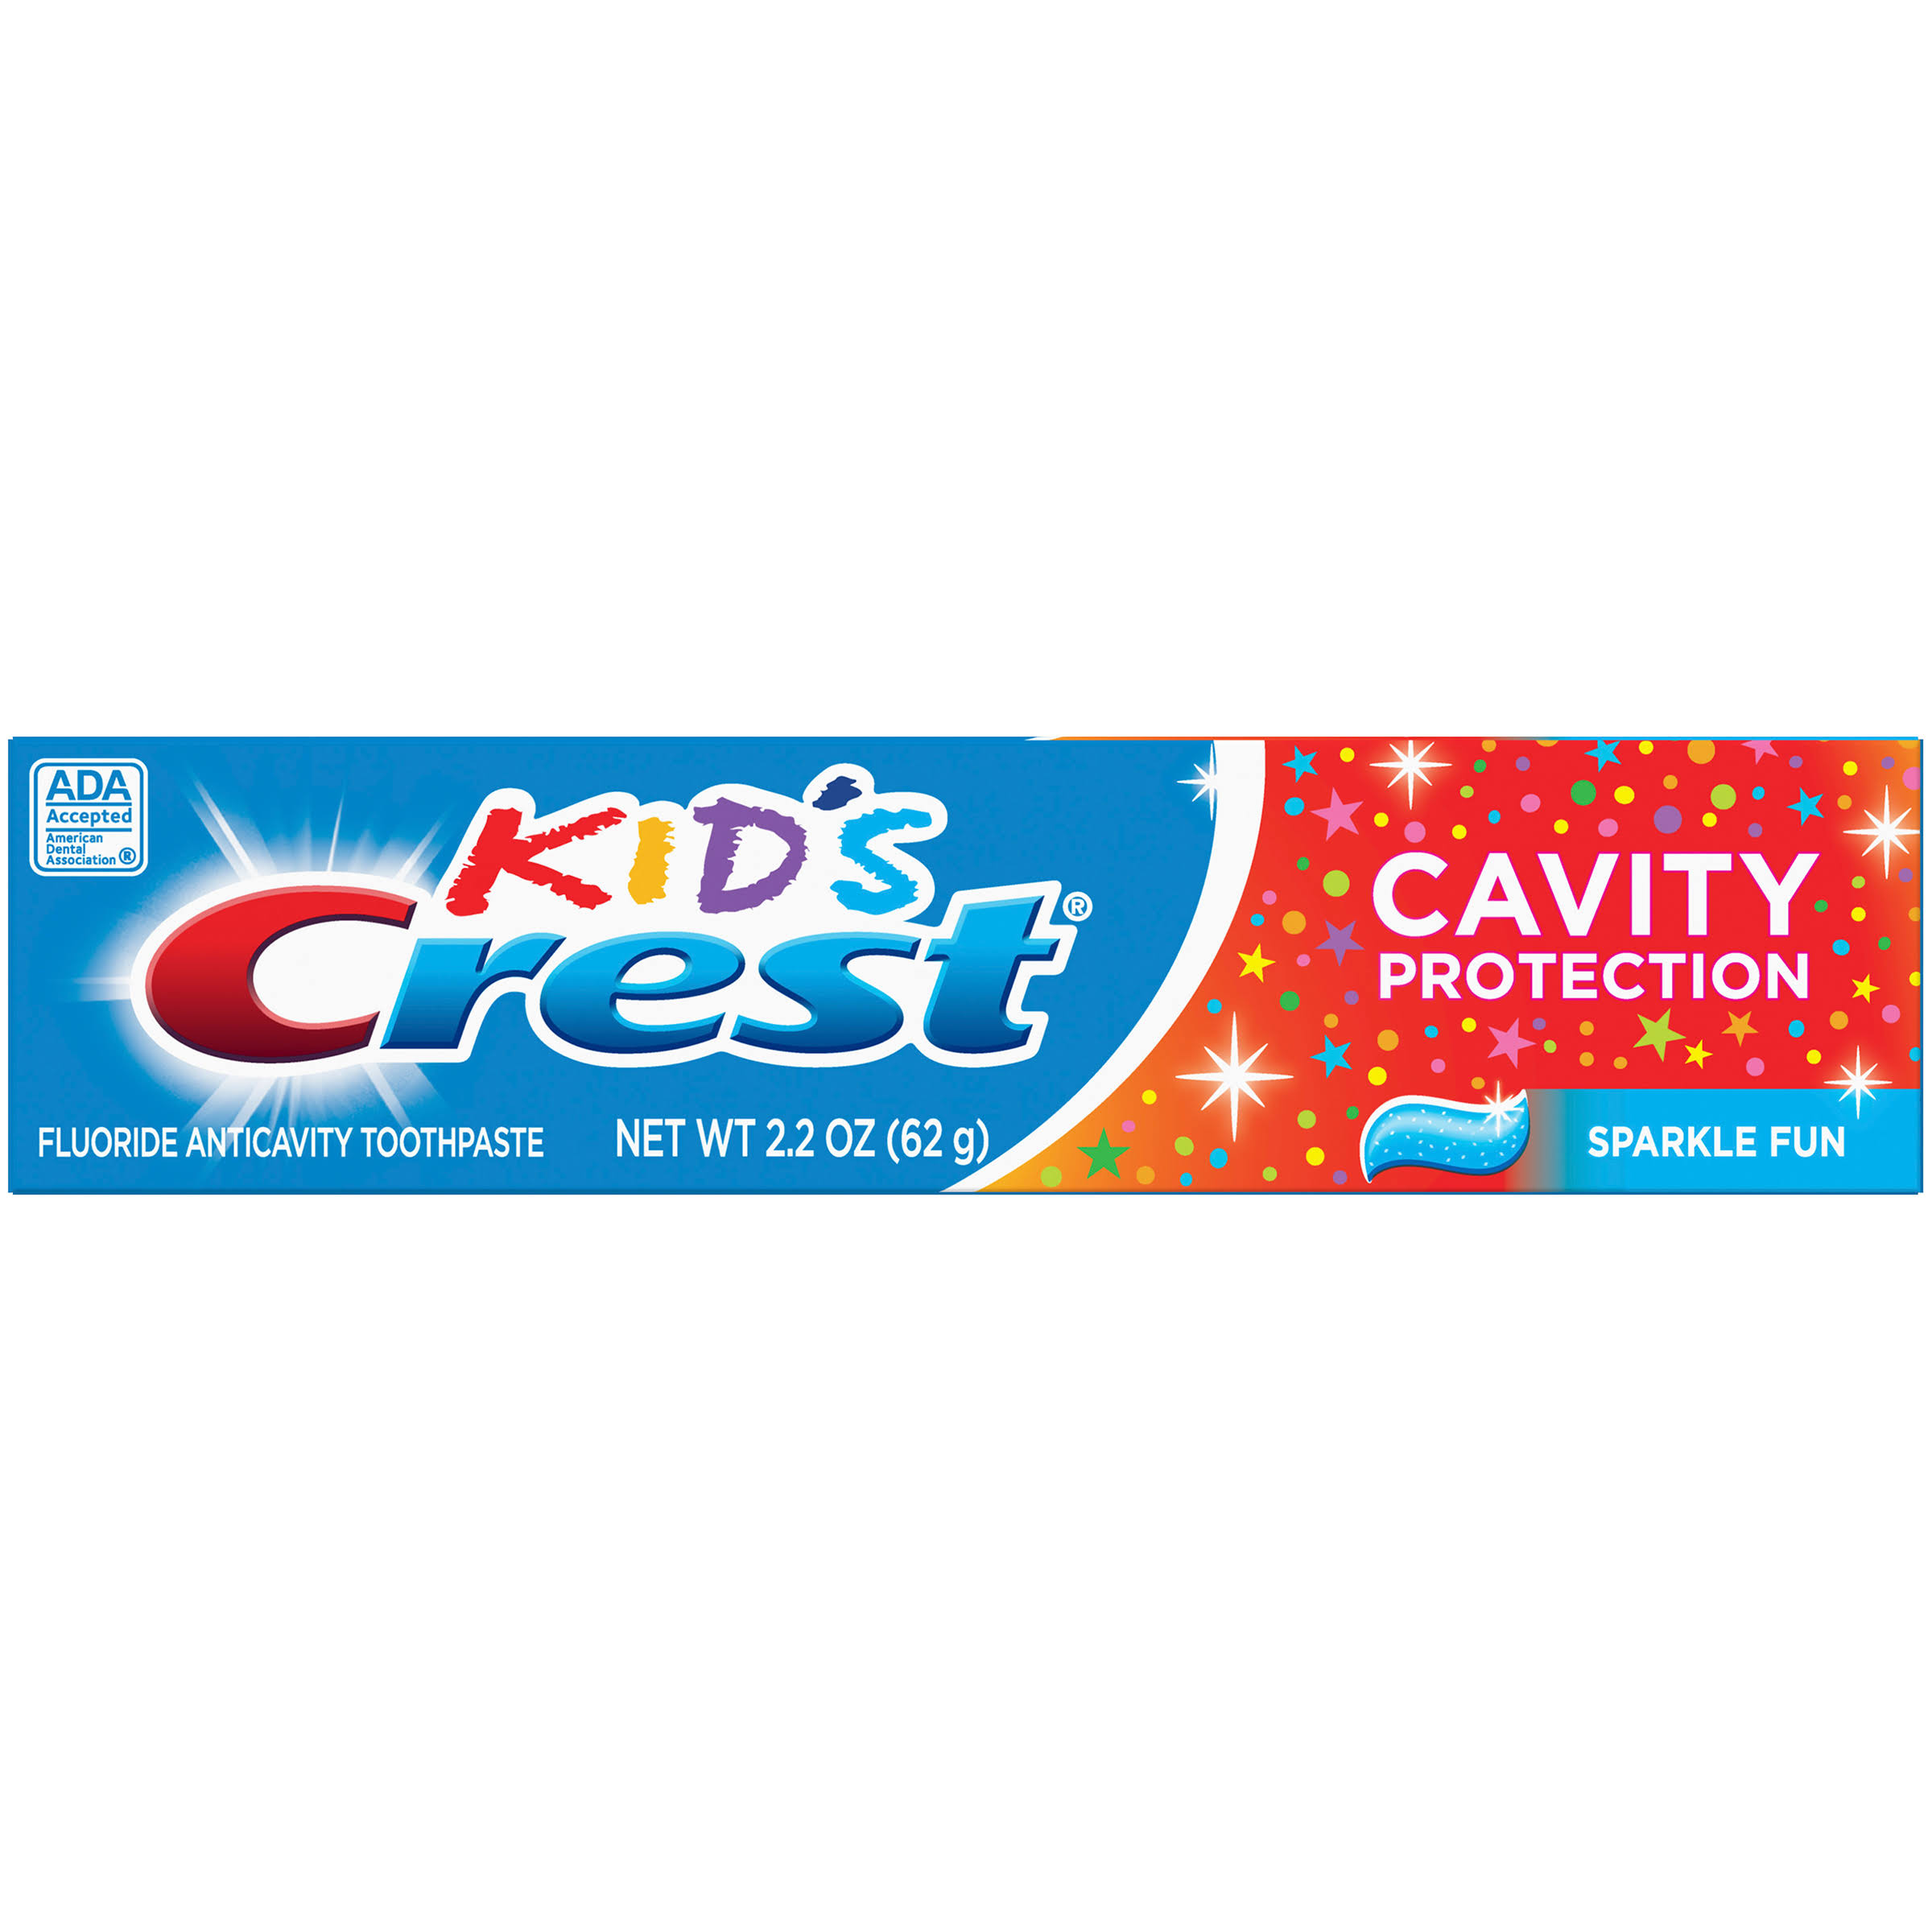 Crest Kid's Cavity Protection Toothpaste, Sparkle Fun, 2.2 oz